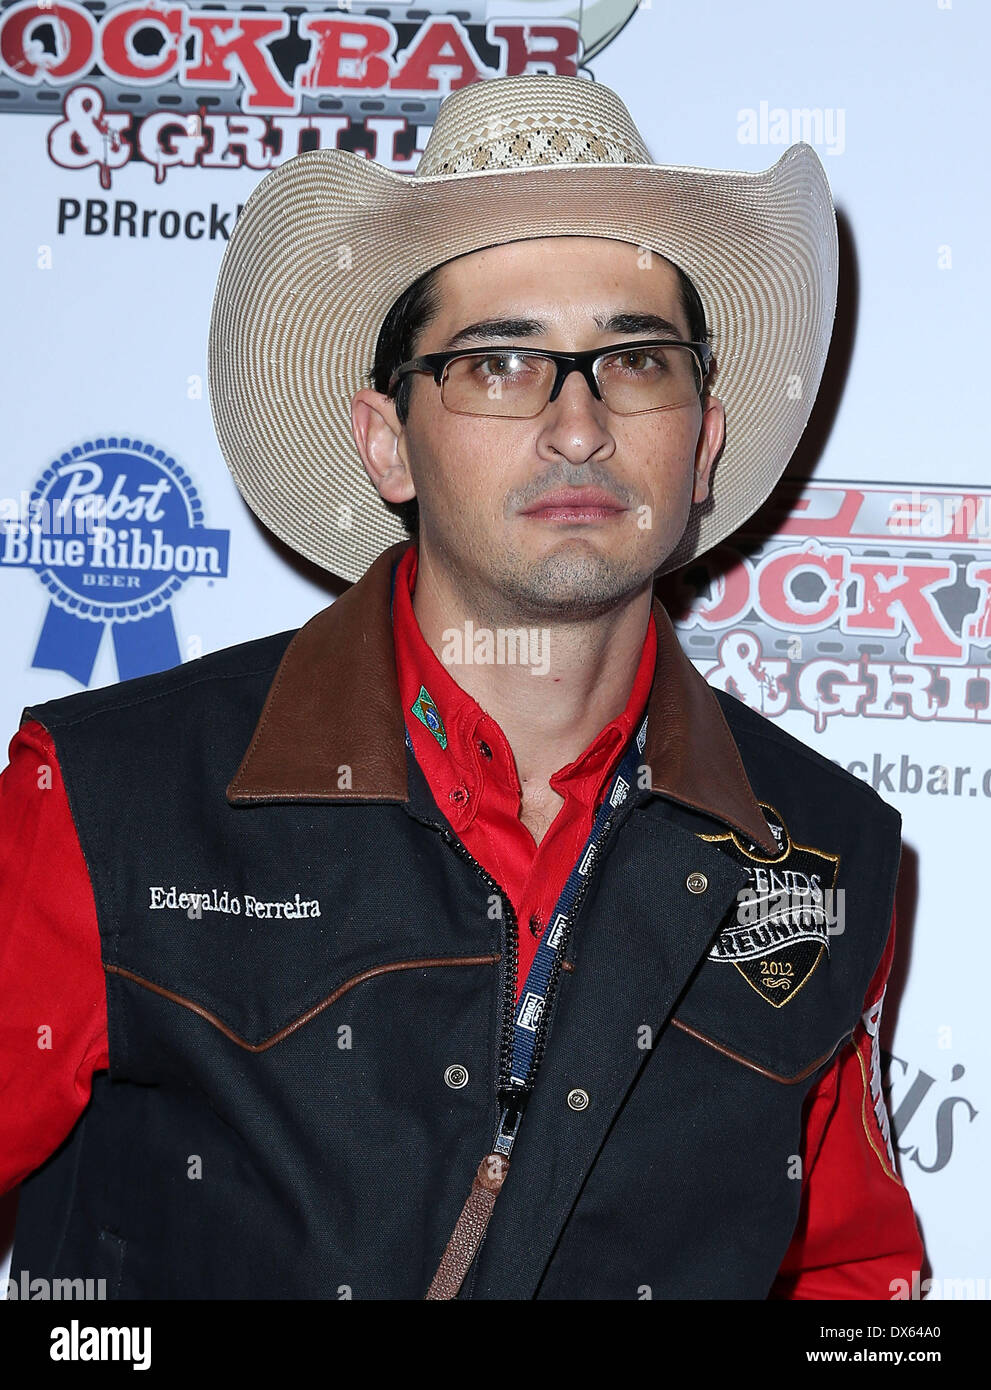 Edevaldo Ferrelra Professional Bull Rider Superstars walk the red carpet at PBR Rock Bar inside The Miracle Mile Shops at Planet Hollywood Resort and Casino Las Vegas, Nevada - 26.10.12 Featuring: Edevaldo Ferrelra Where: United States When: 26 Oct 2012 - Stock Image